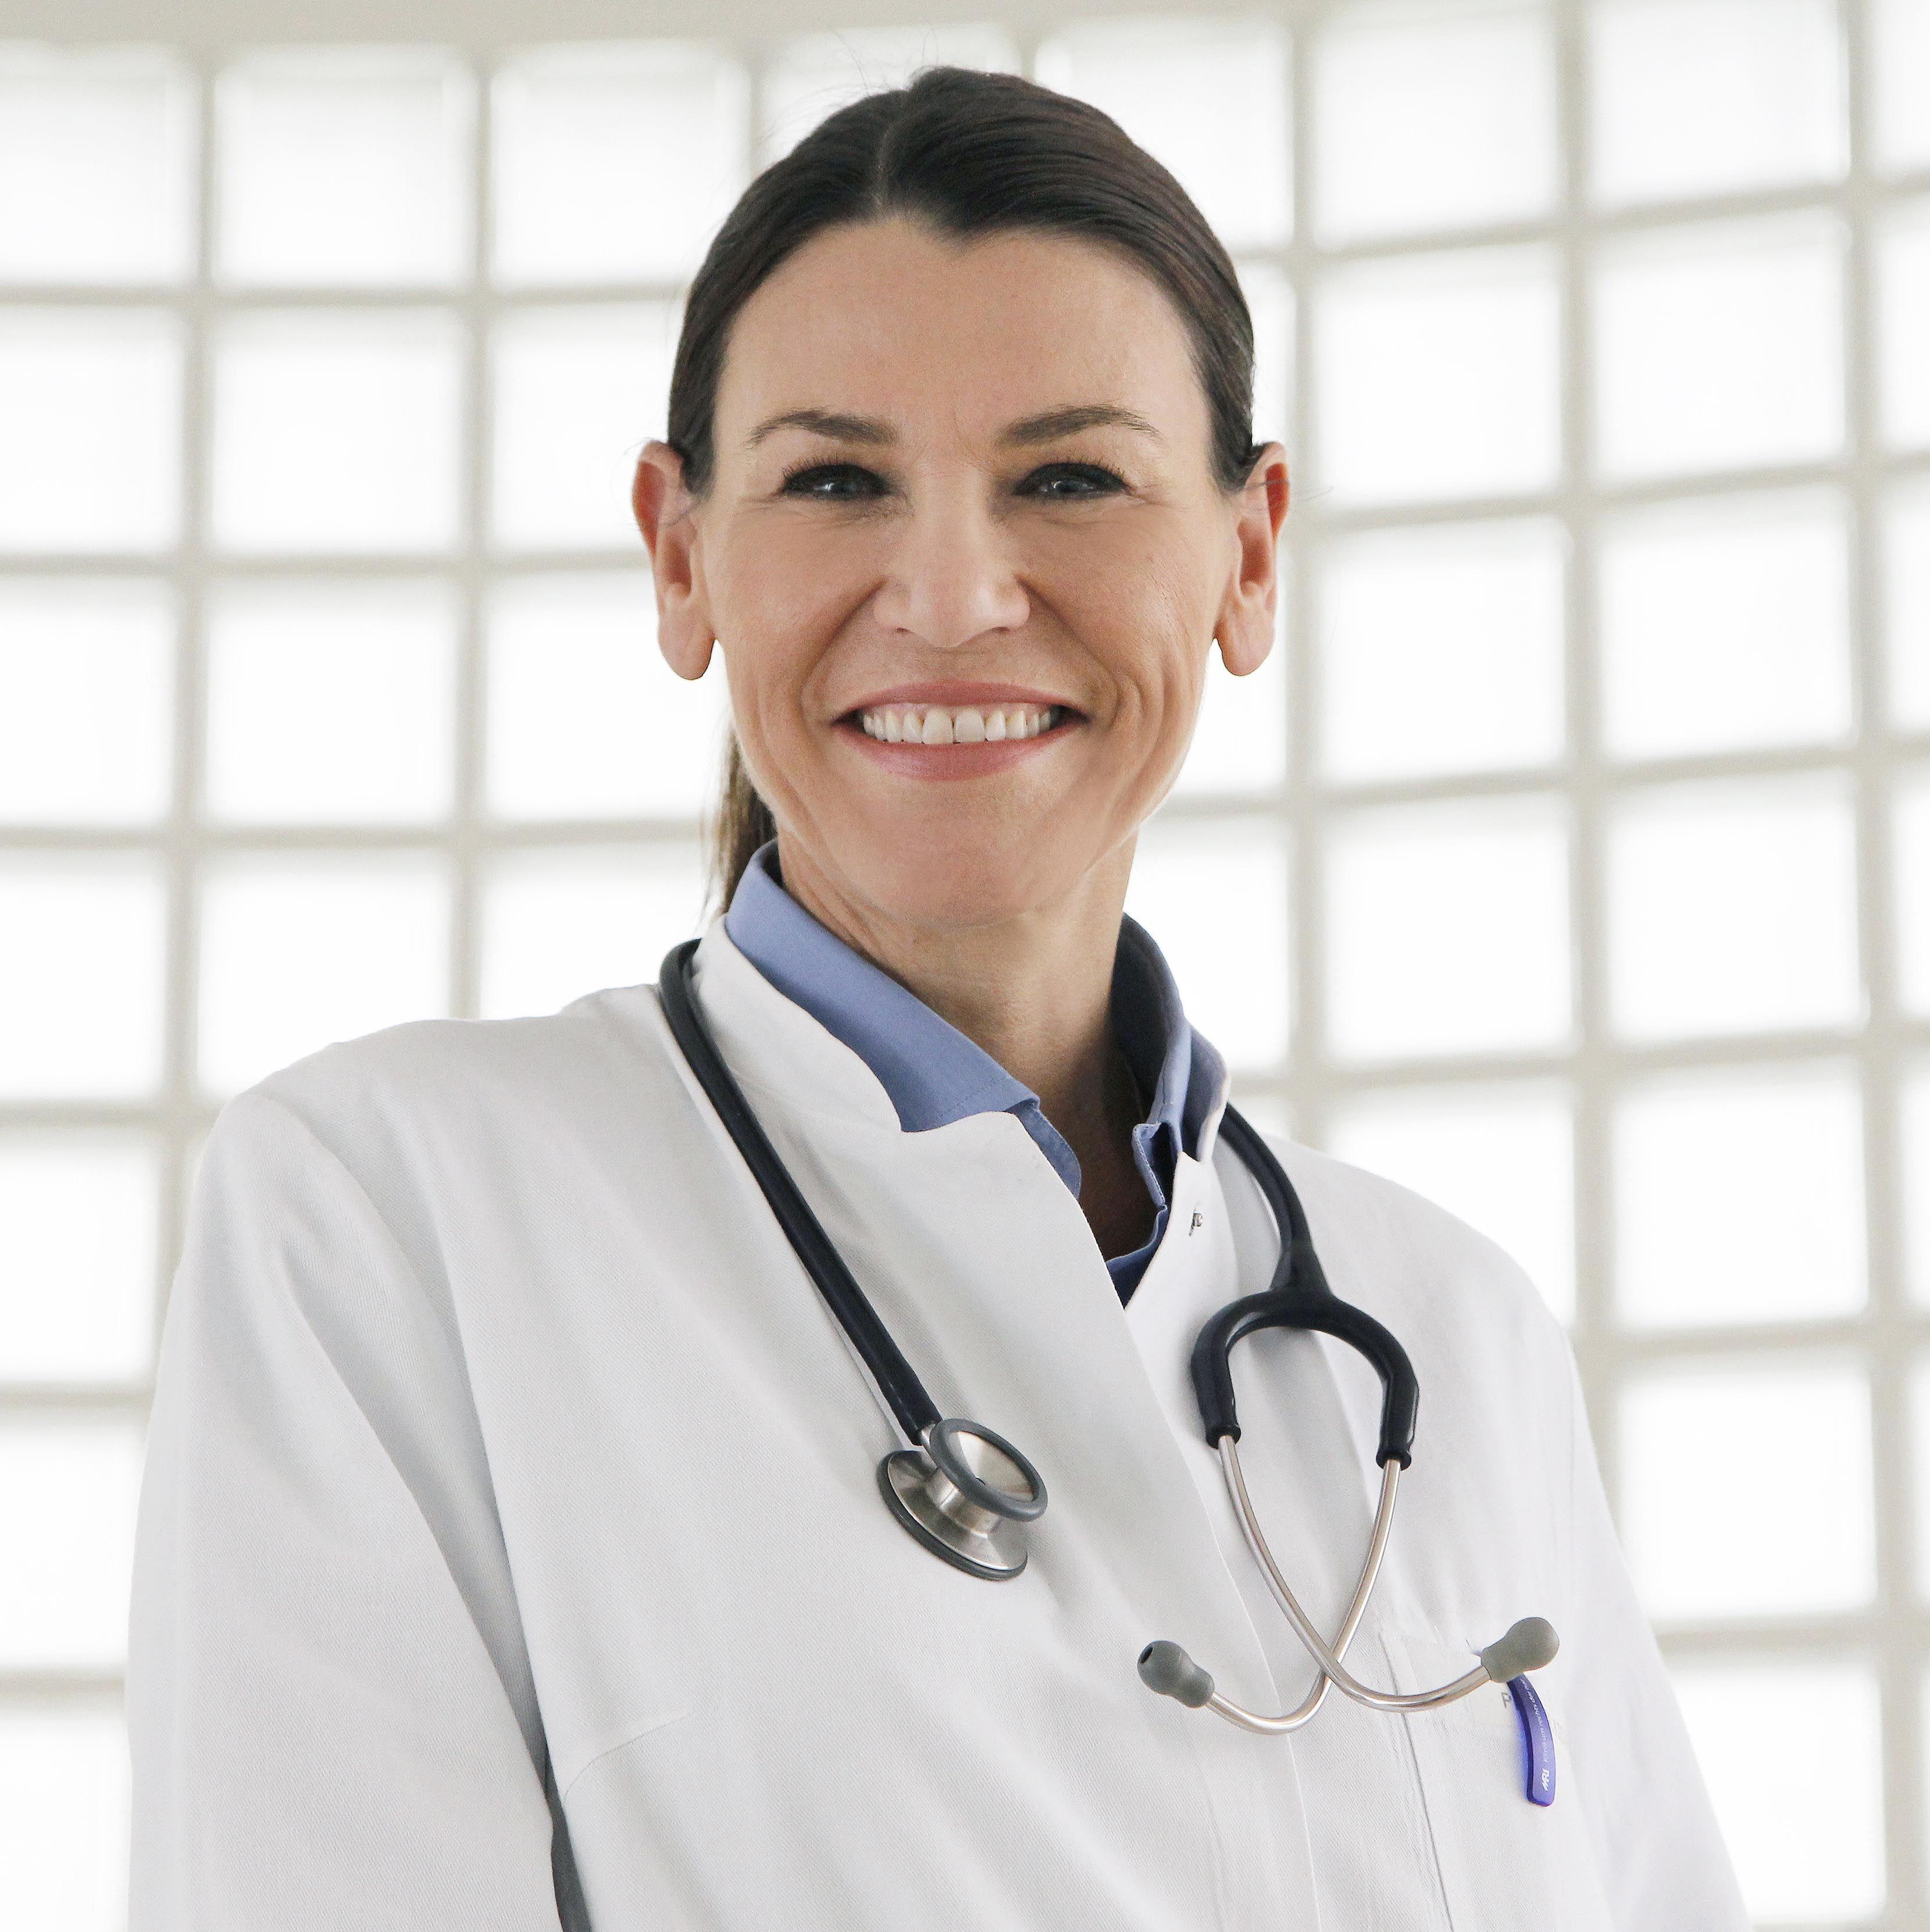 Marion Kiechle is a Professor for Gynaecology.